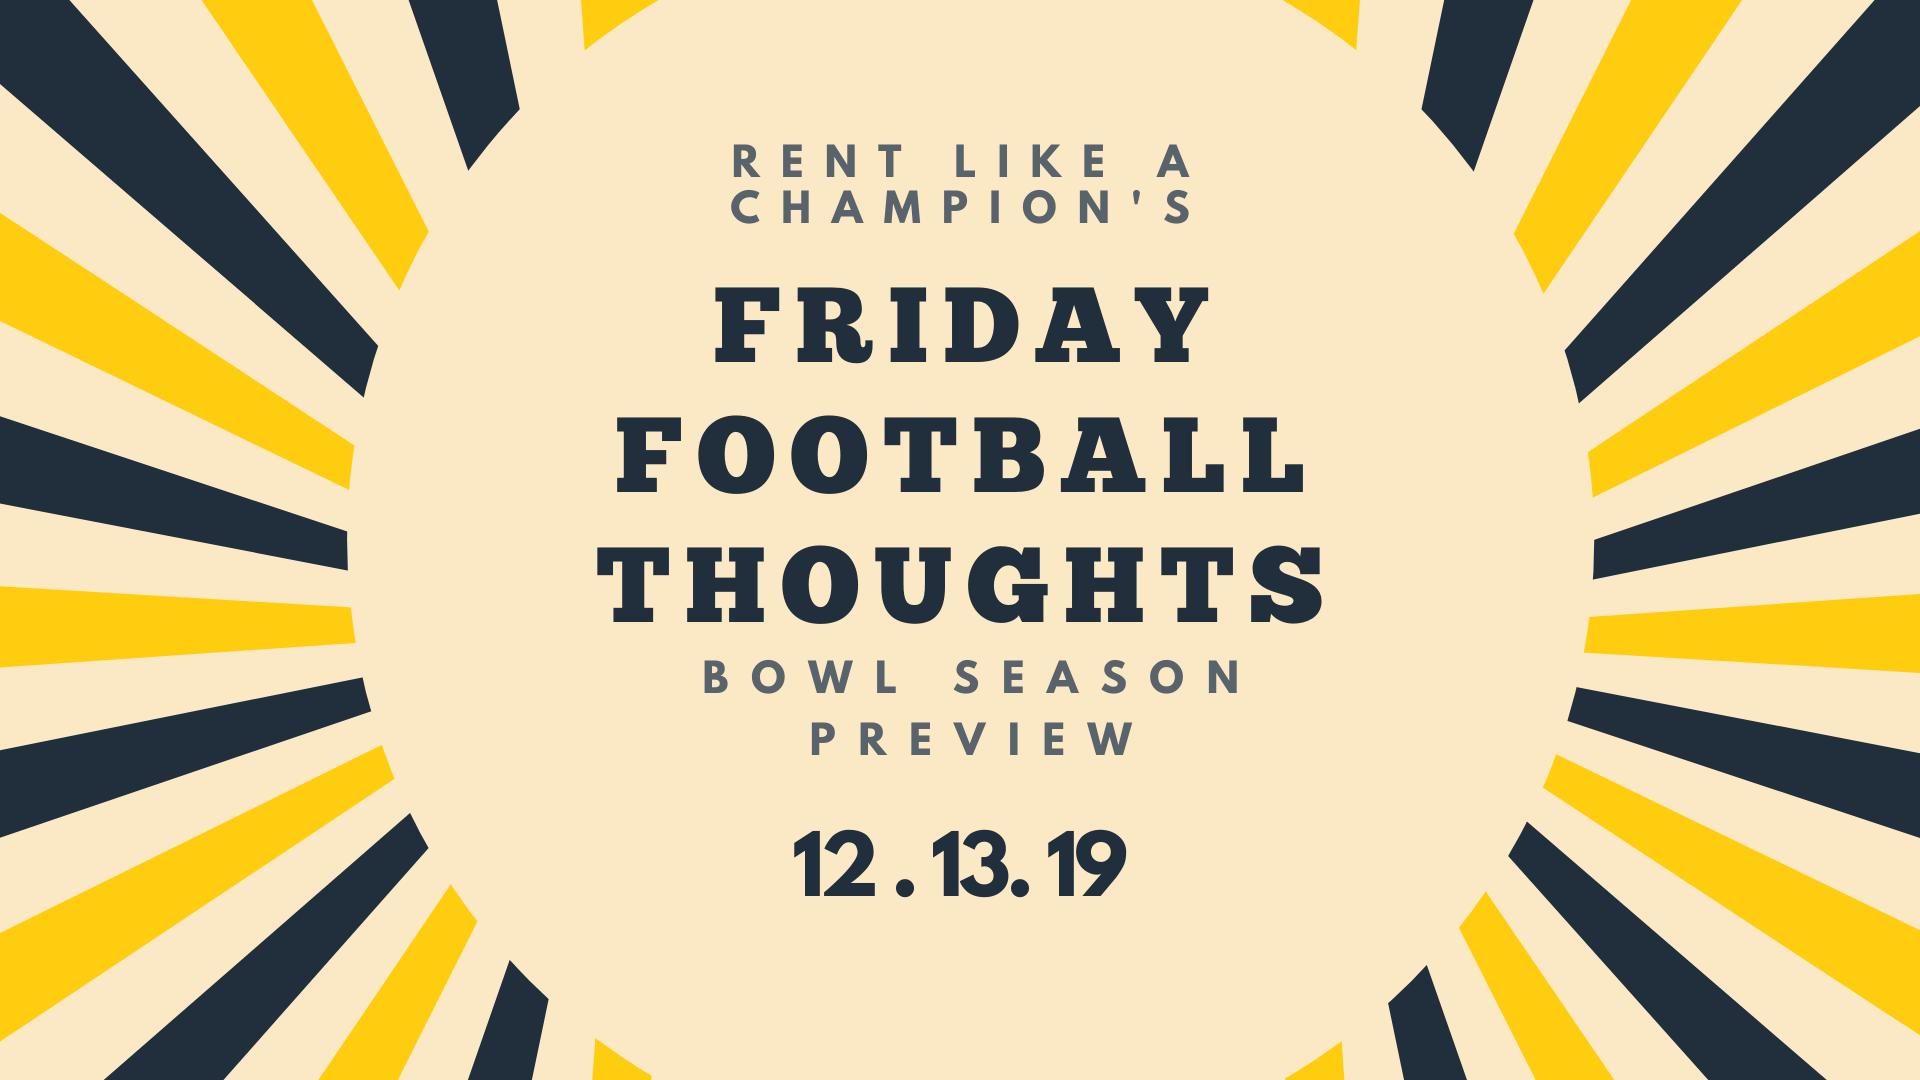 Friday Football Thoughts Template (7)